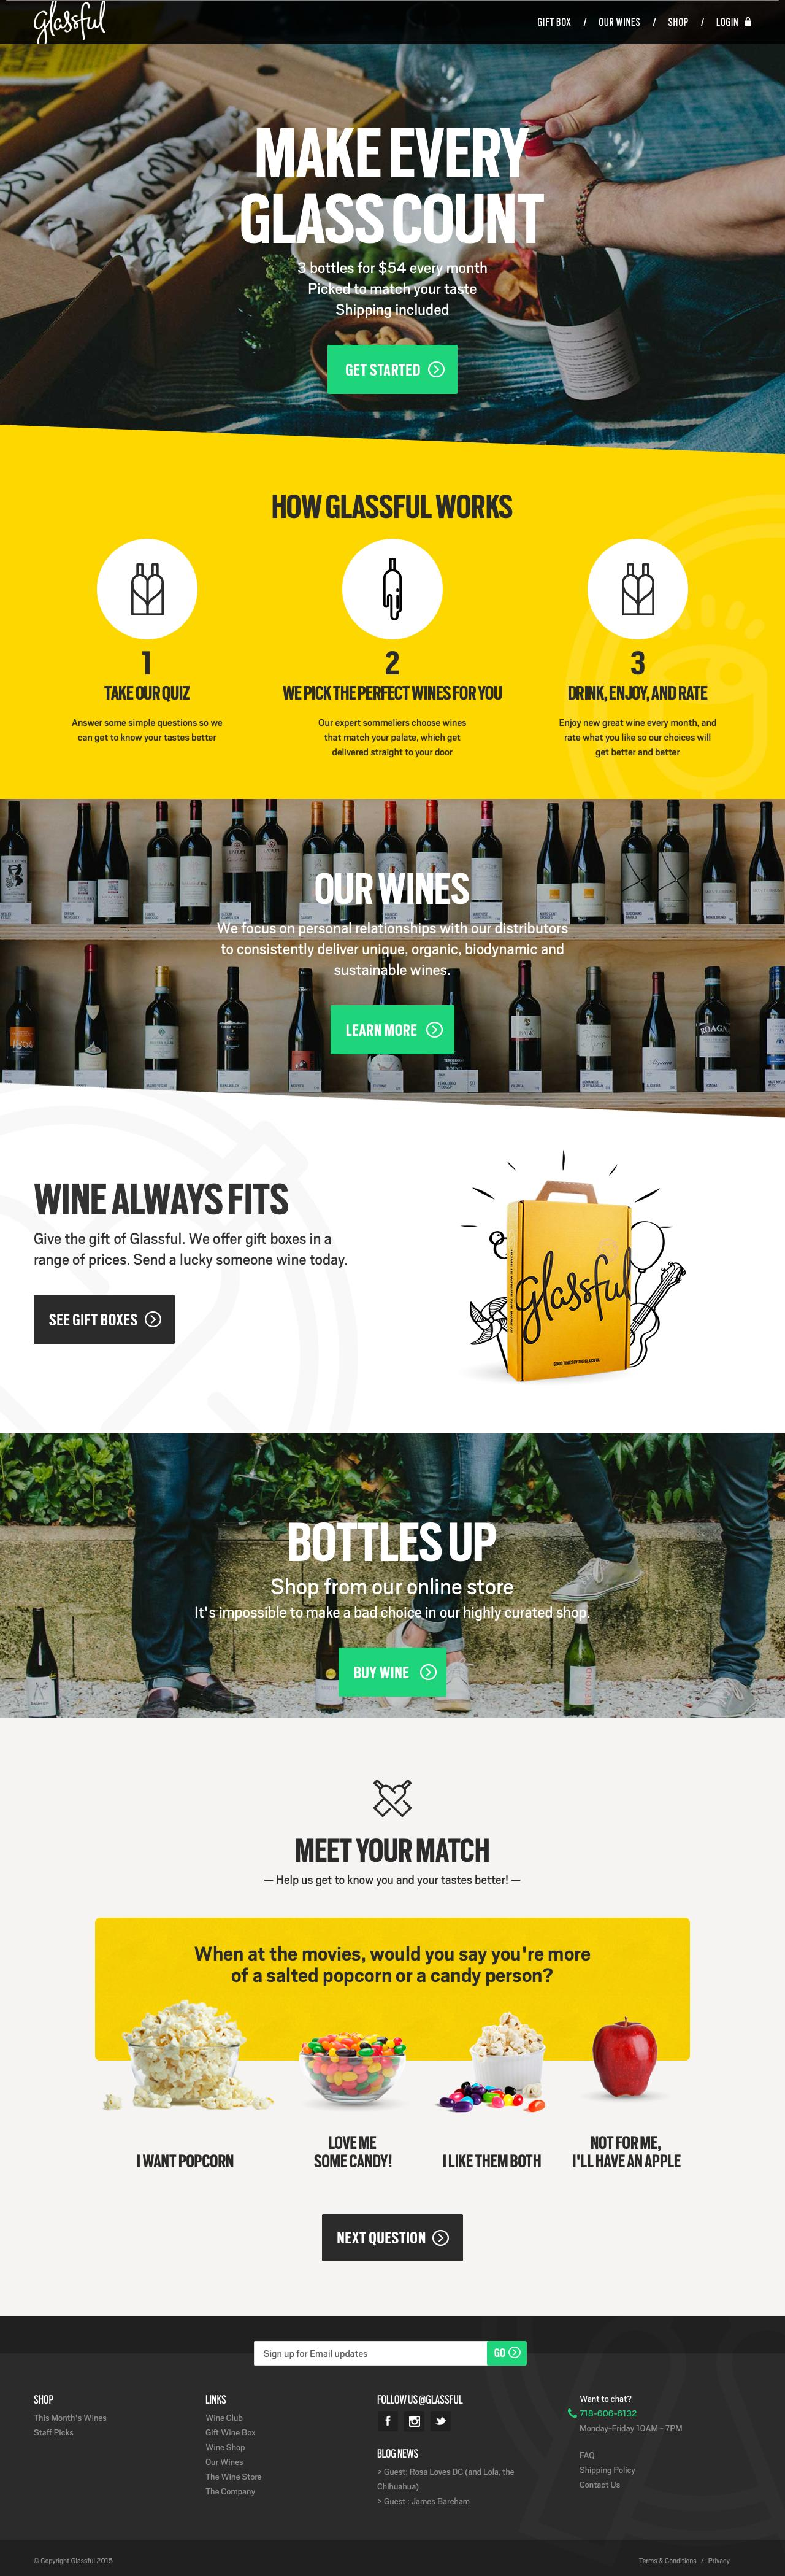 Screenshot of glassful.com - Glassful - Welcome to a new way to wine. - captured Dec. 1, 2015